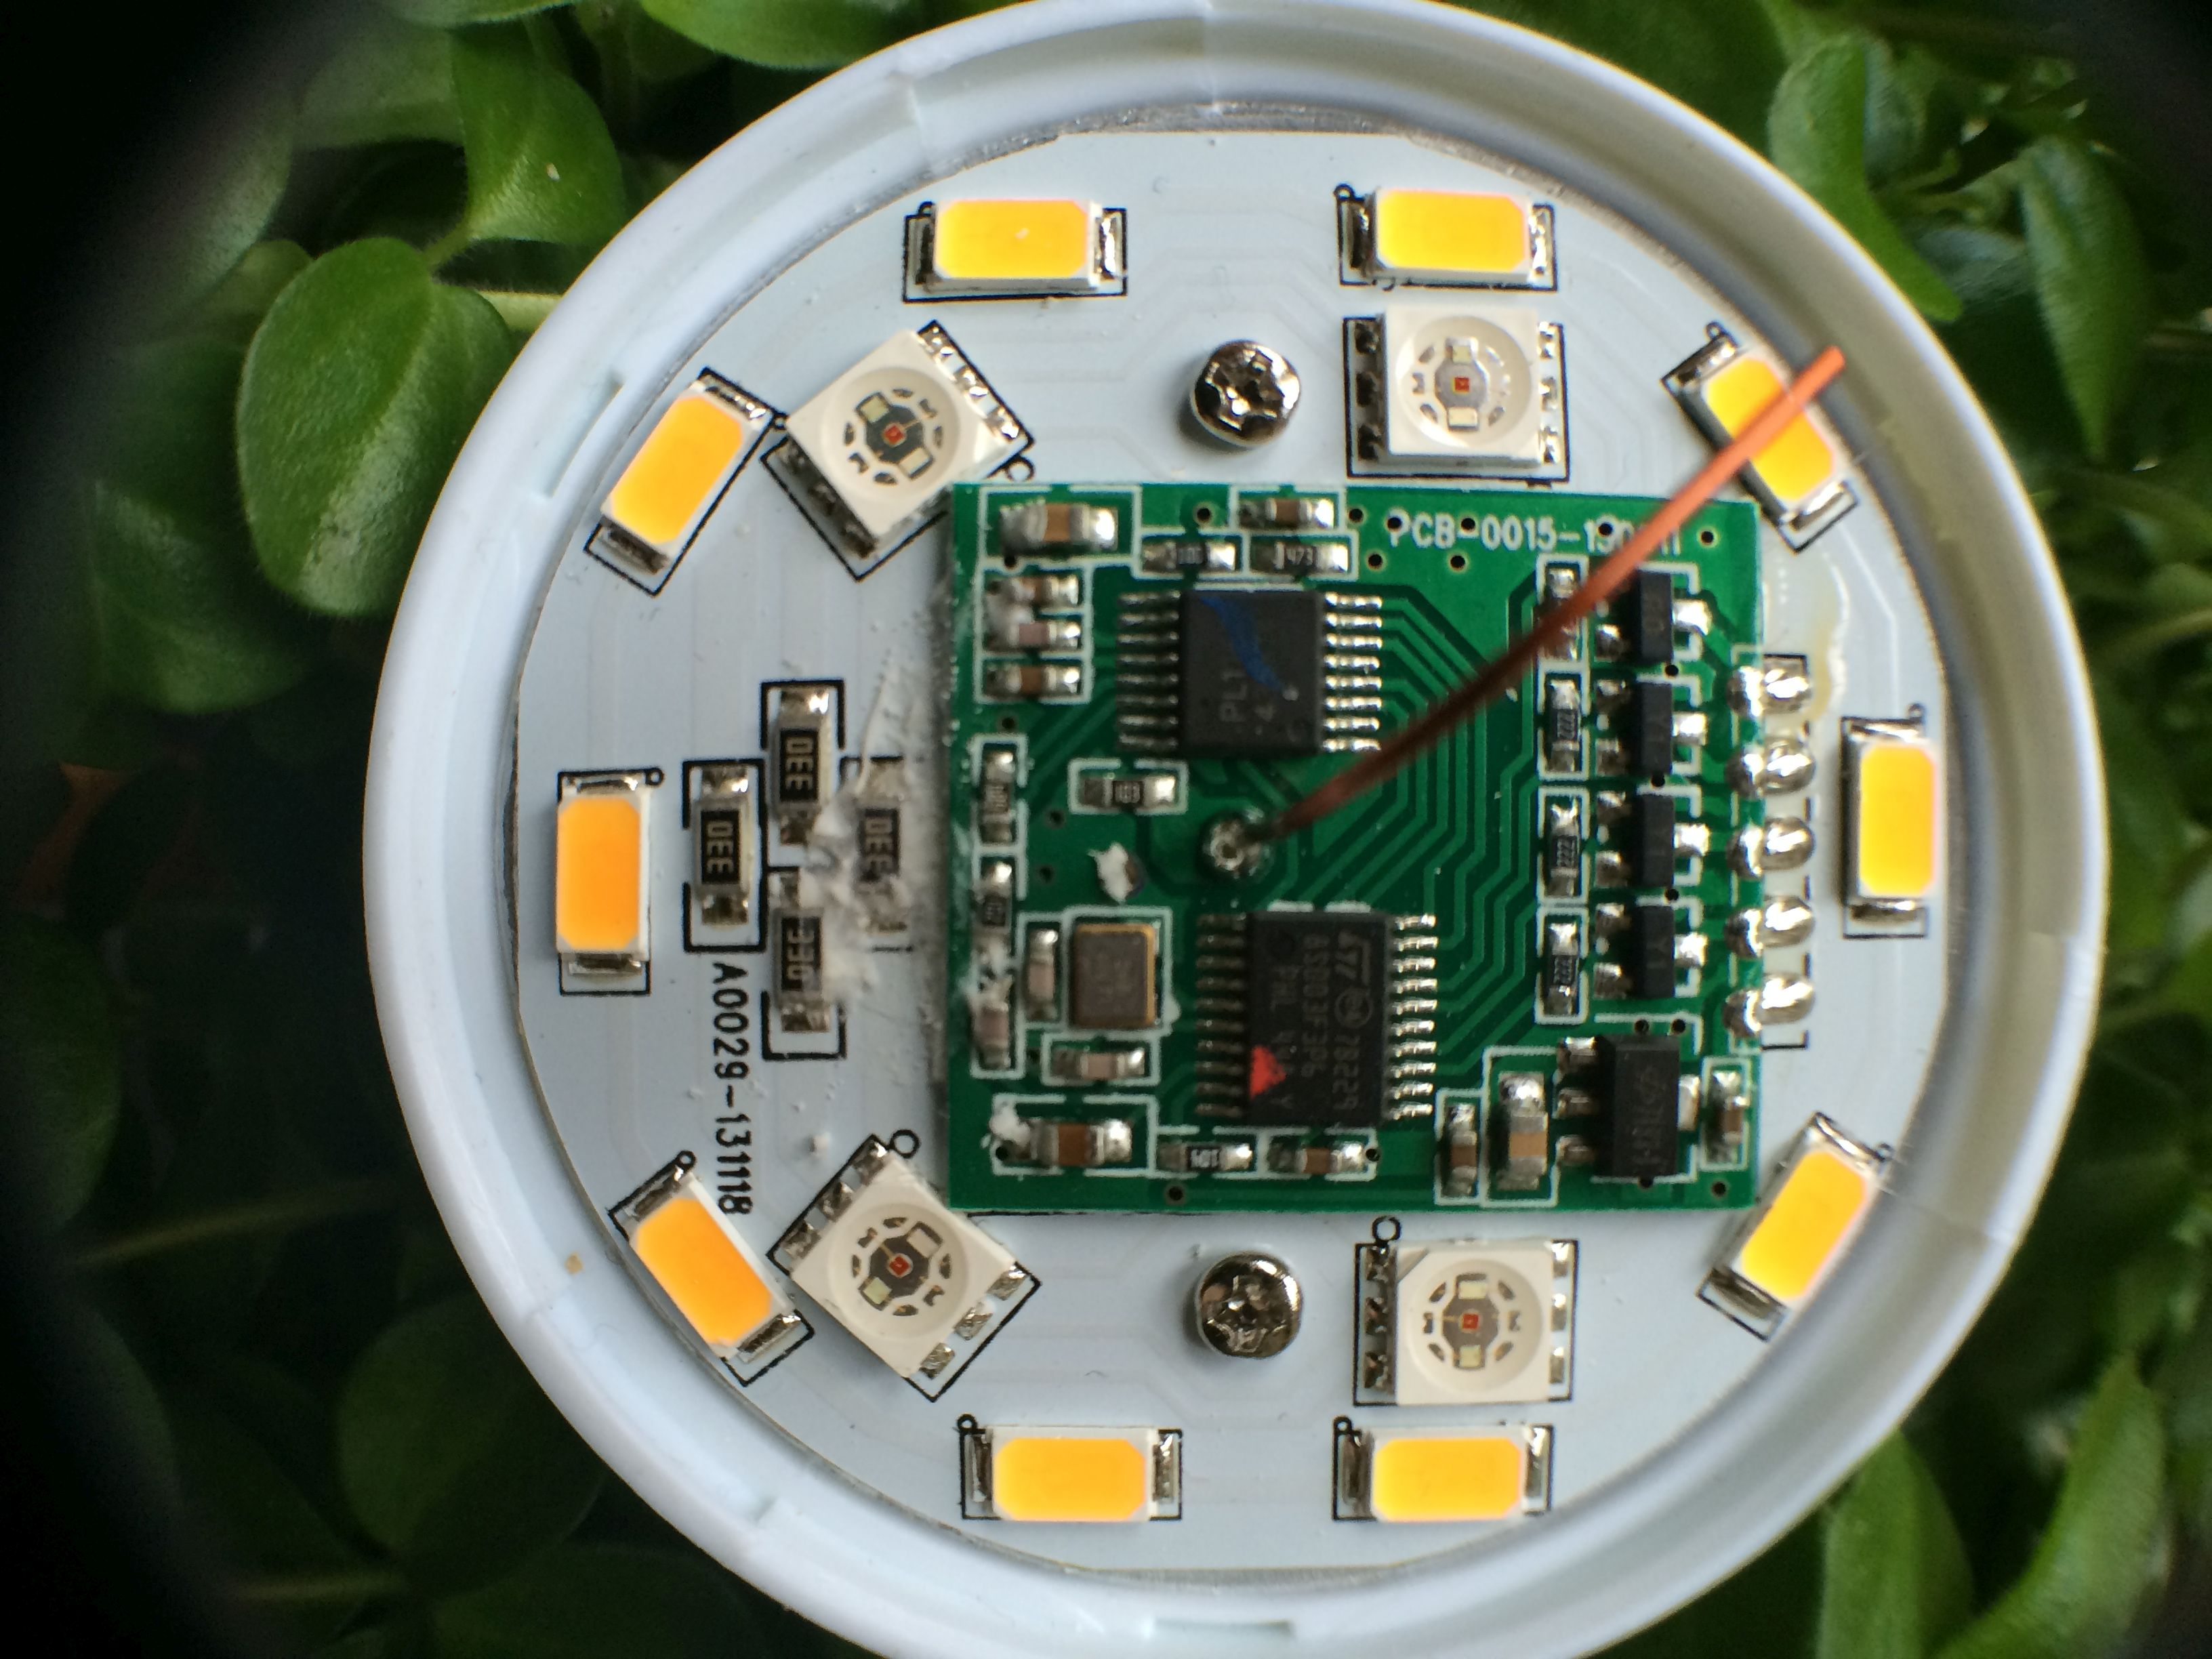 Controlling Milight Like The Philips Hue Using A Modified Arduino Temperature Sensor Wiring In Addition Headphone Lifier Circuit Bulb Old Nrf24l01 Proto